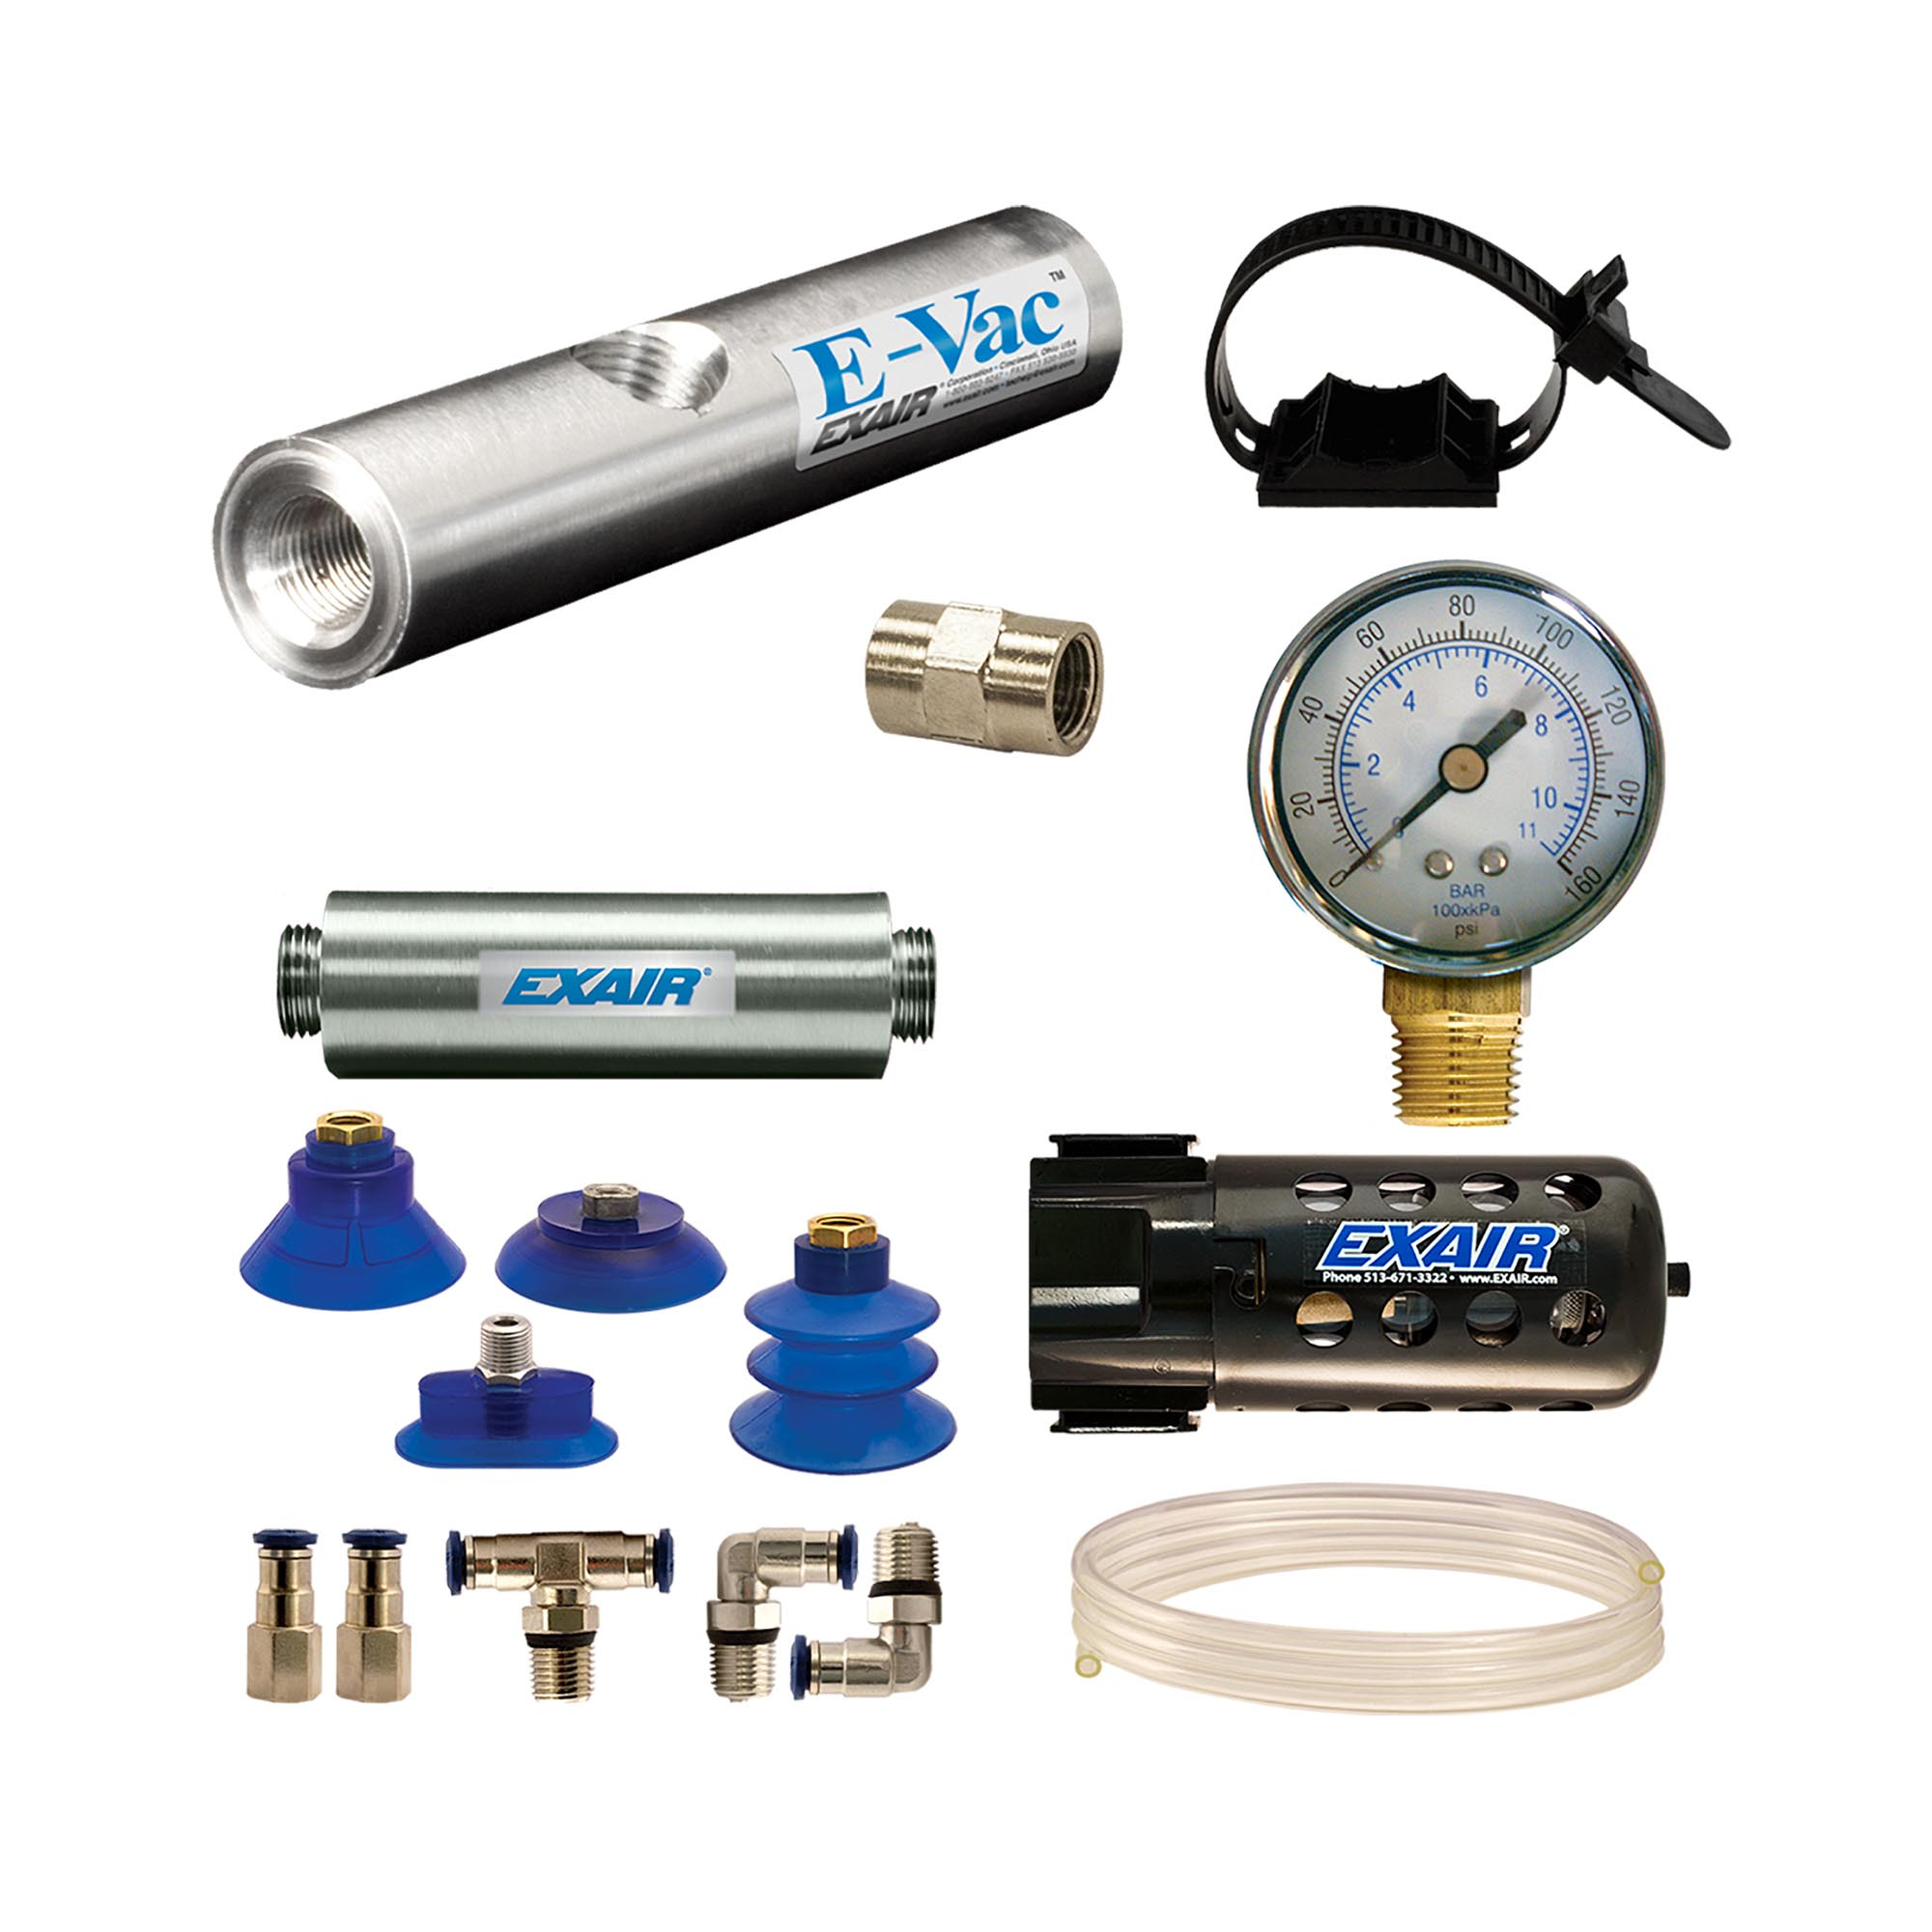 Model 812003M In-Line E-Vac Deluxe kit with straight through muffler .